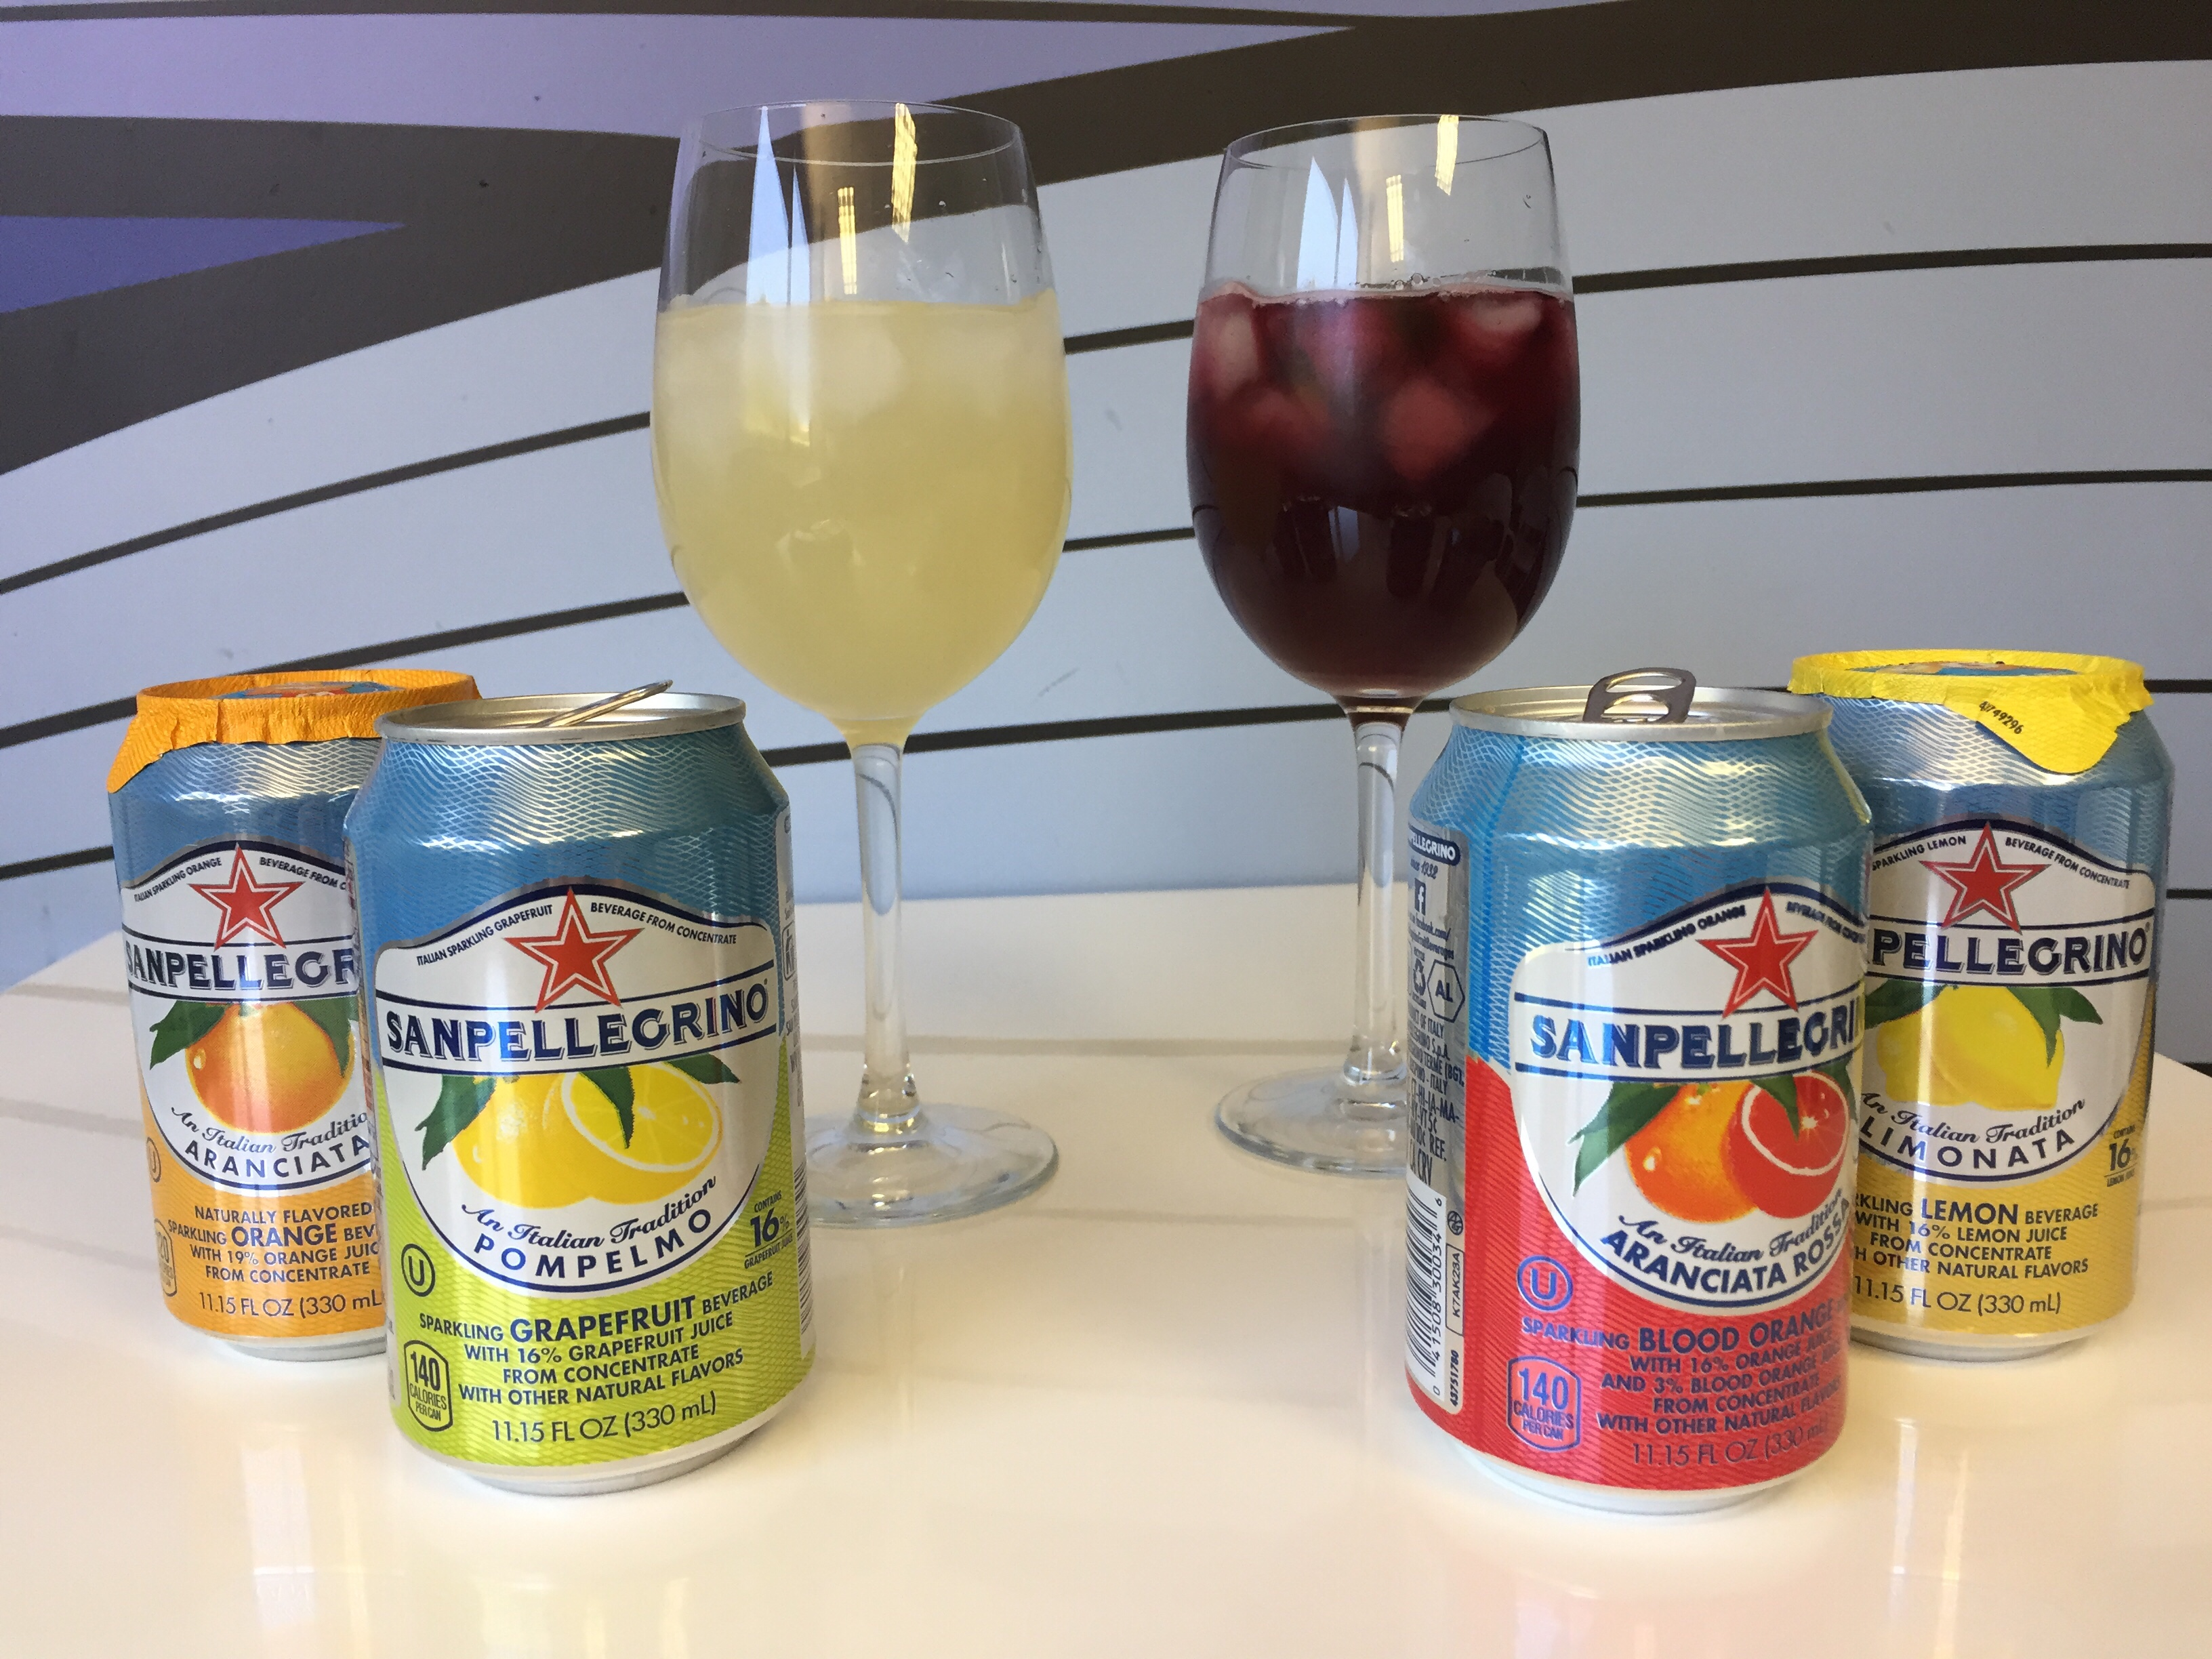 Sangria with Sanpellegrino Soda